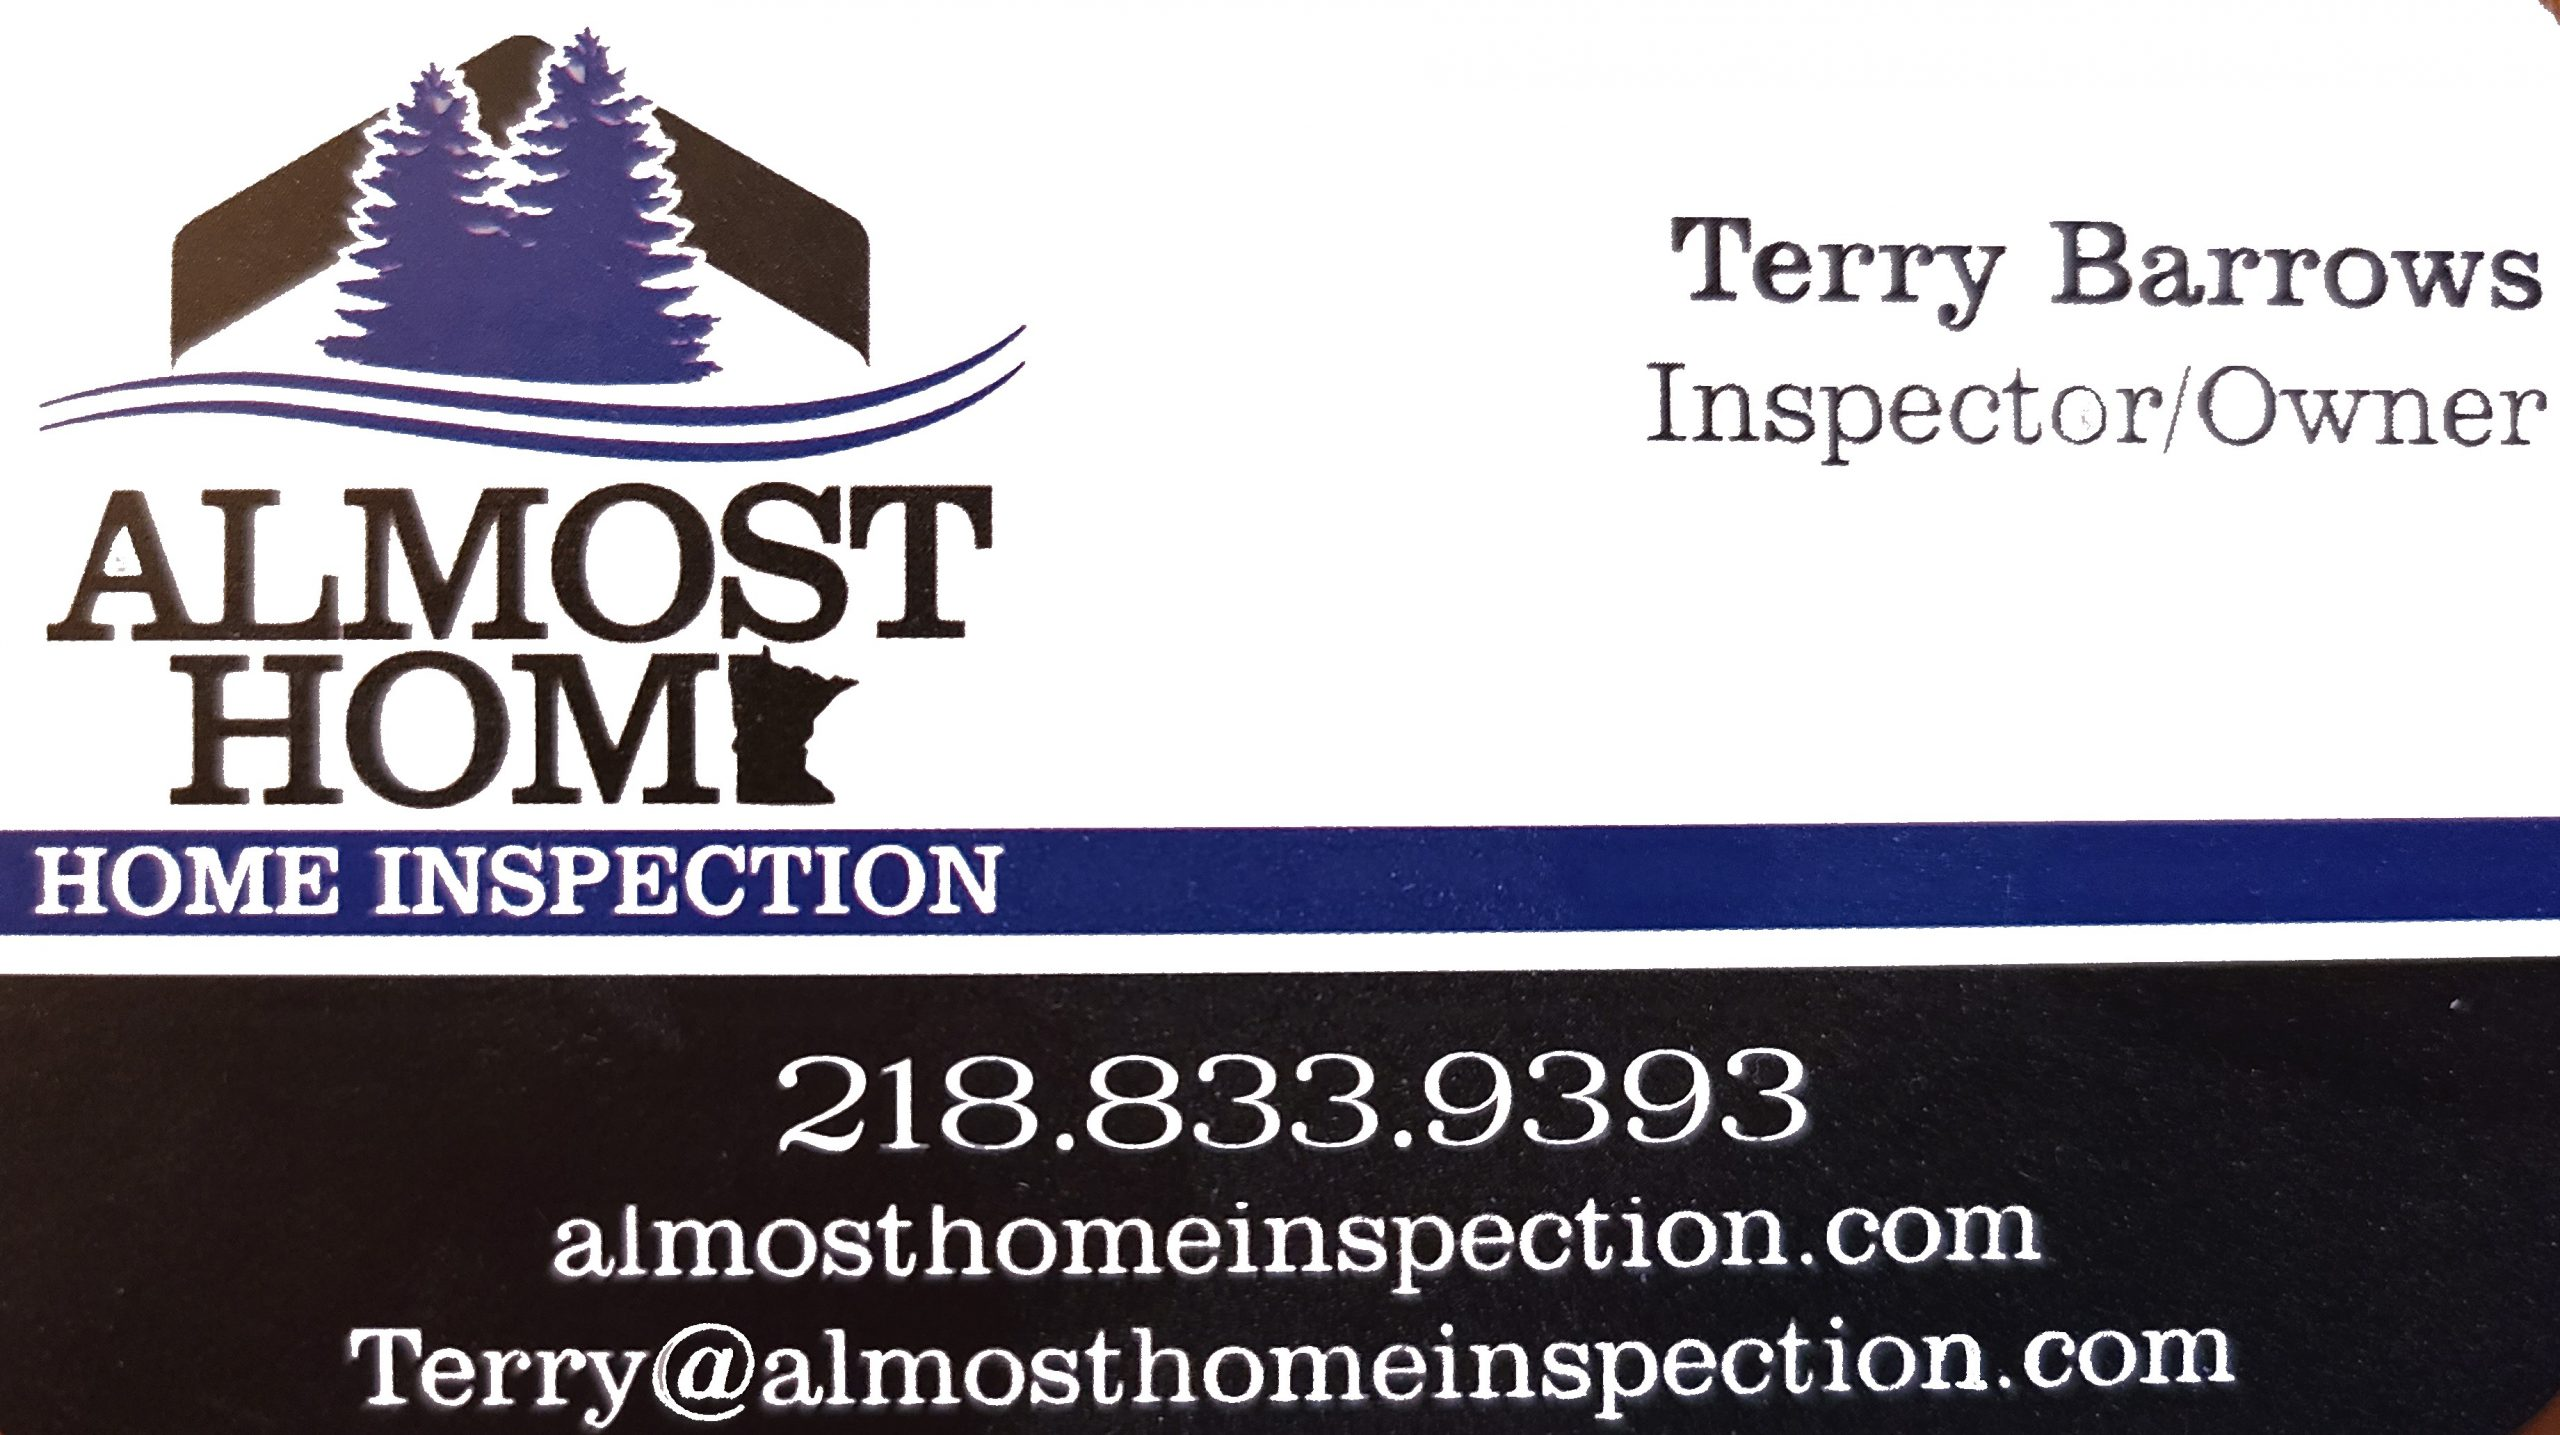 Almost Home Inspection